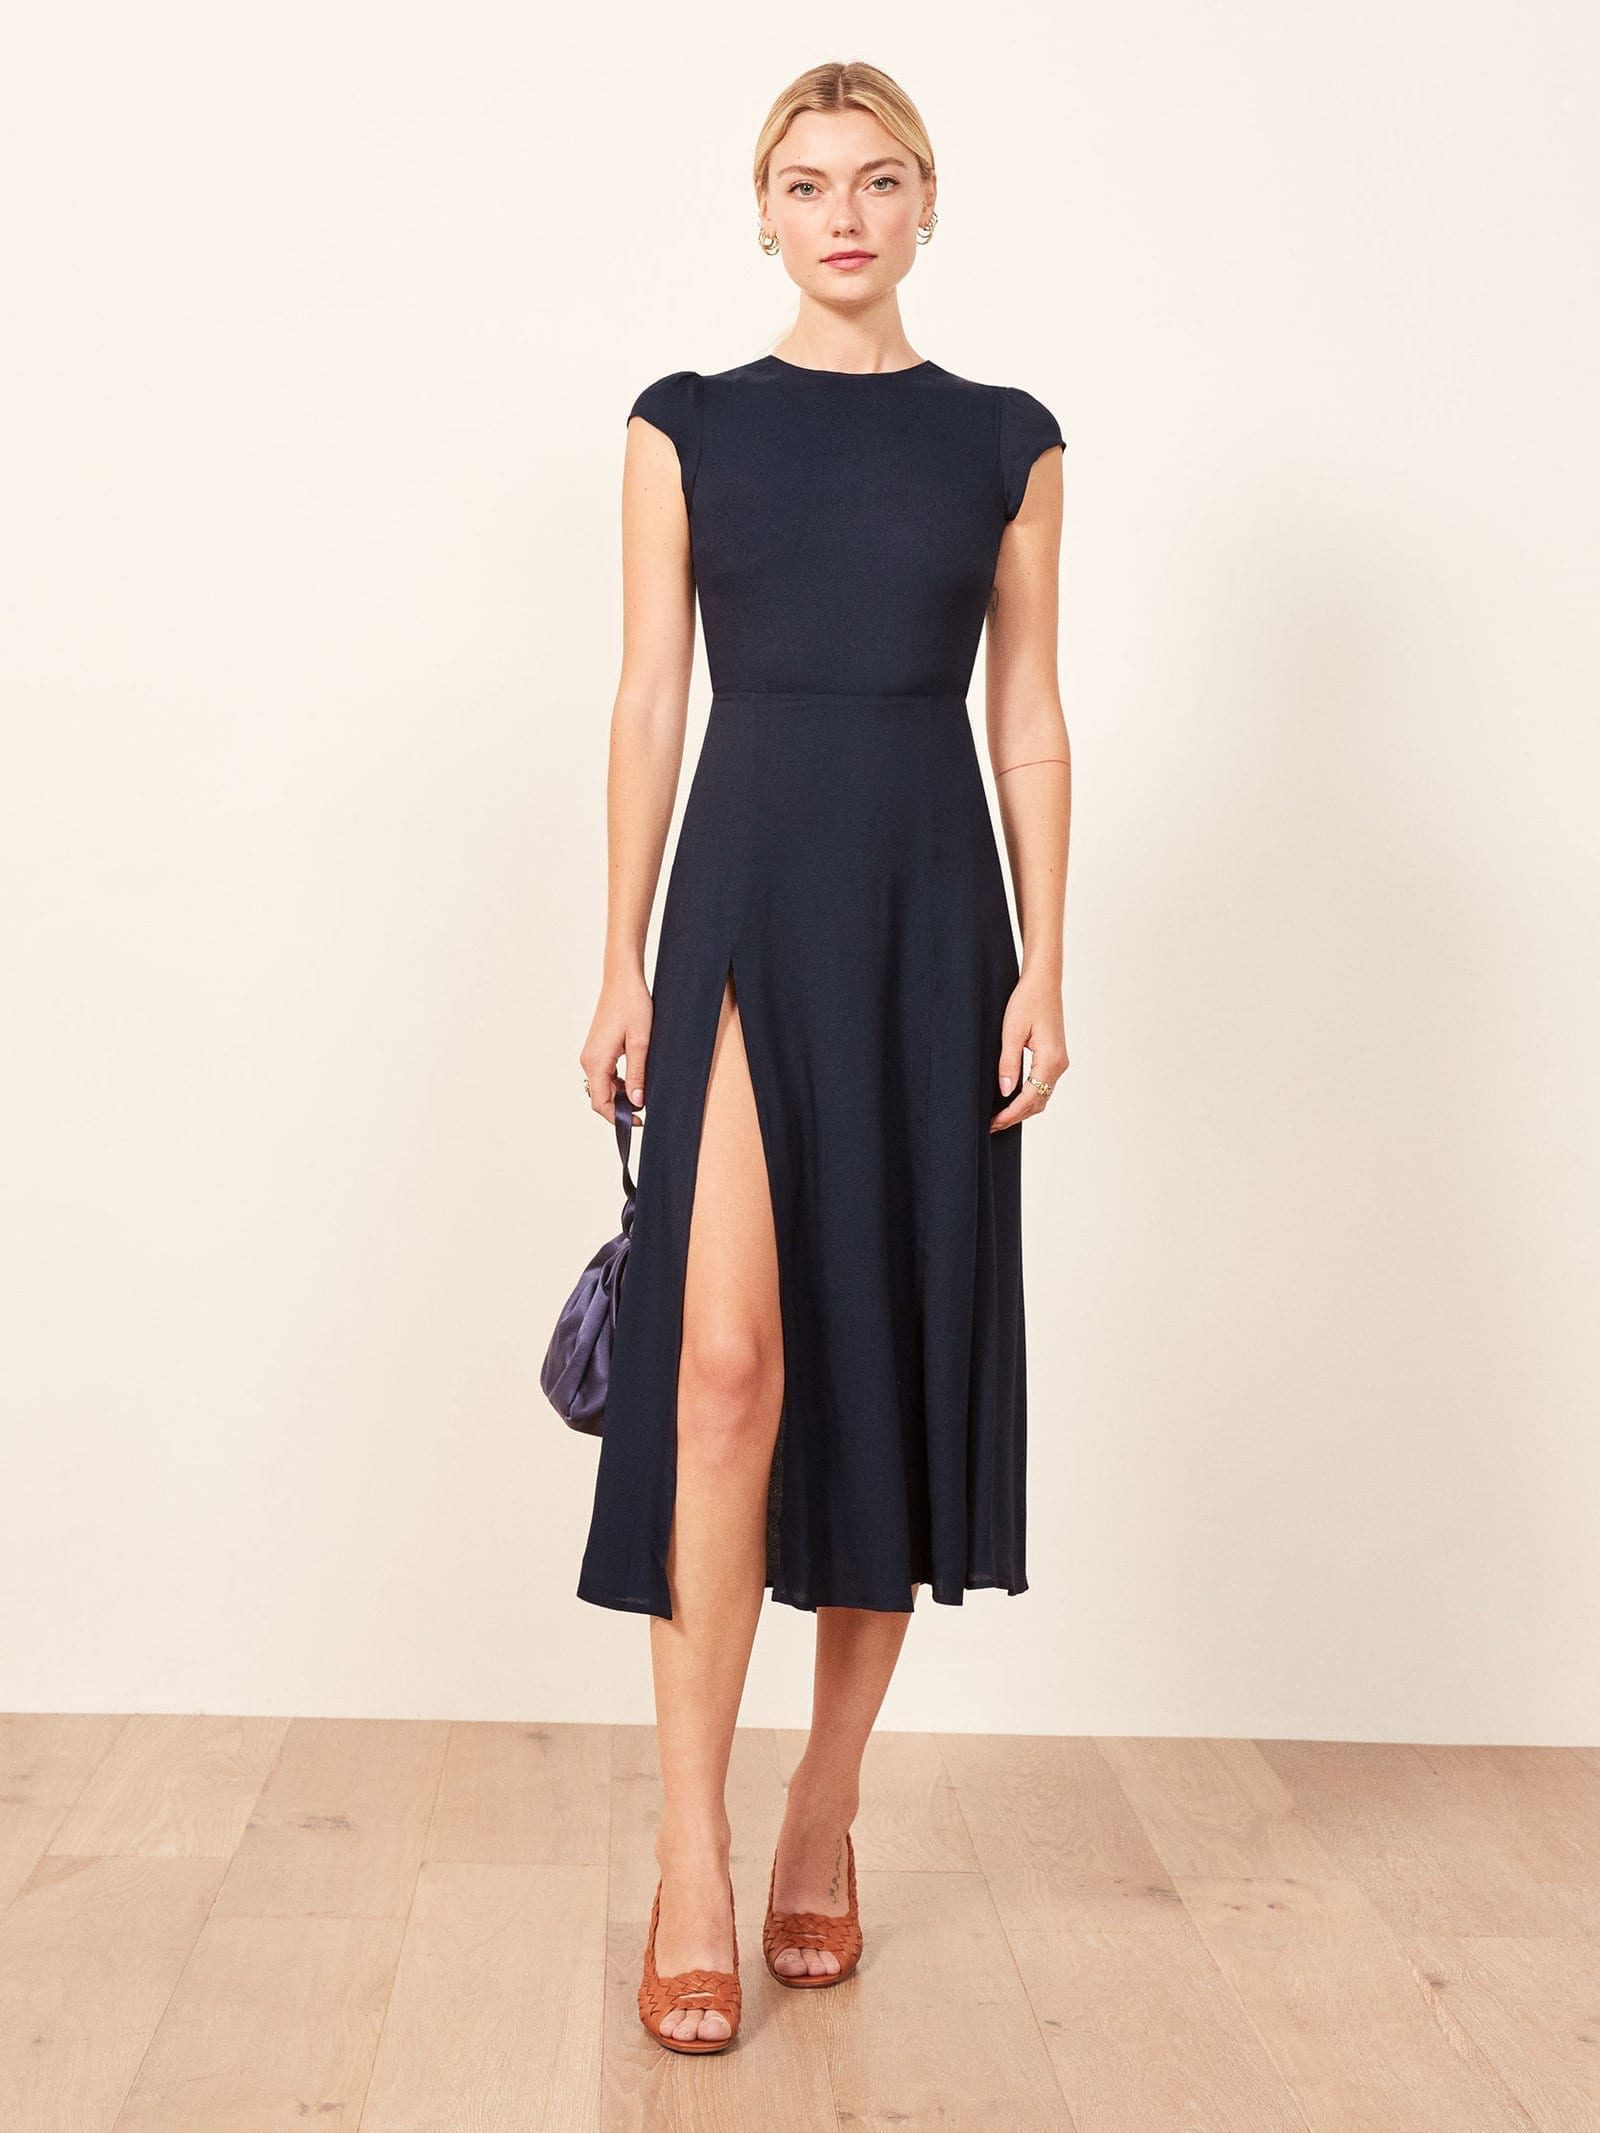 REFORMATION Gavin Navy Dress